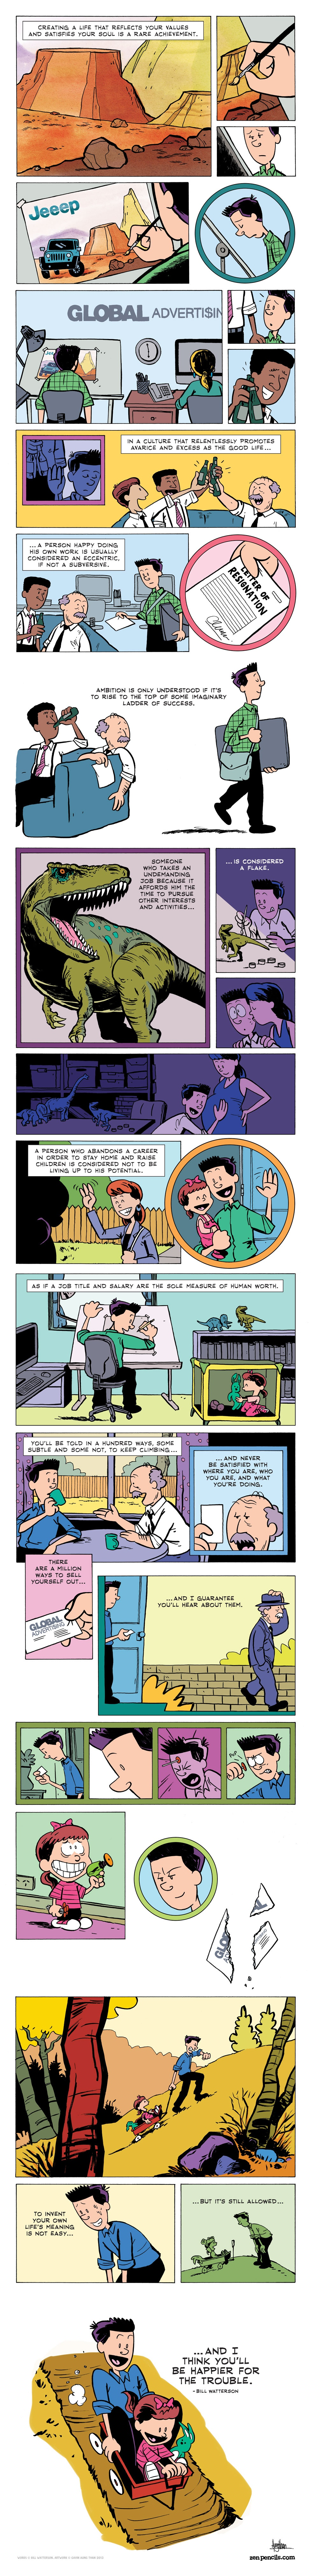 http://www.slate.com/content/dam/slate/blogs/browbeat/2013/08/27/watterson_advice_large.jpg